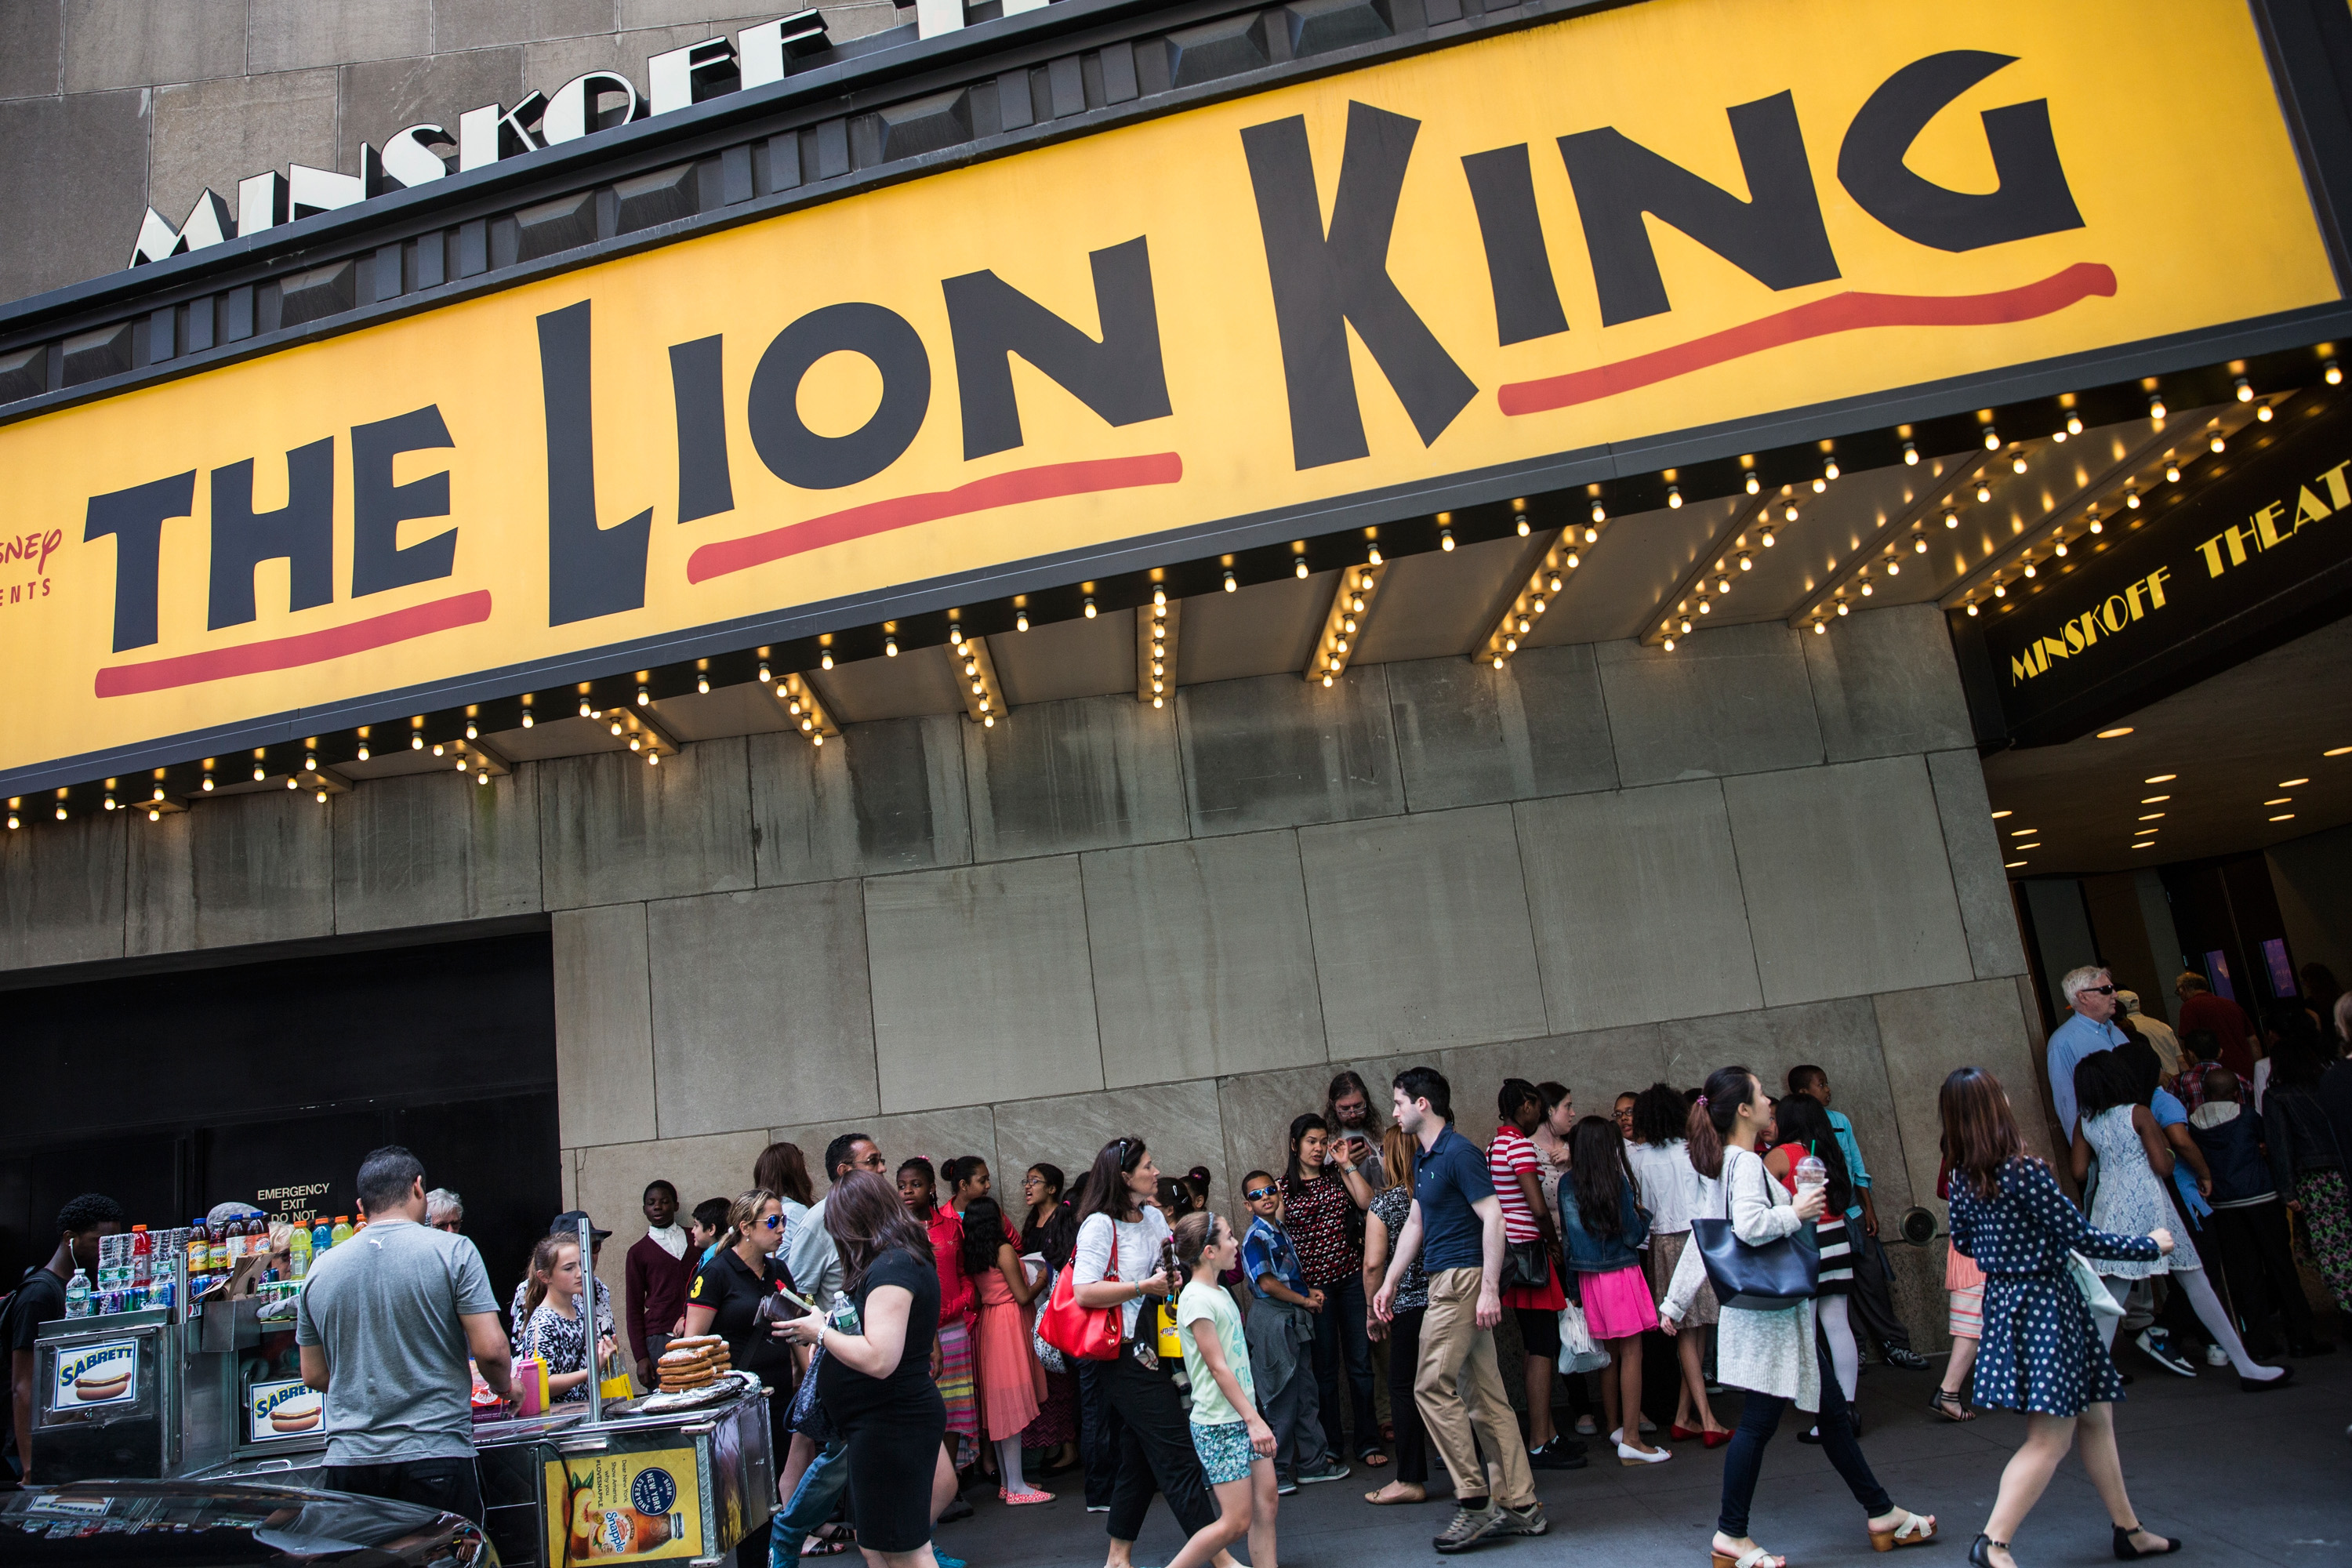 People wait in line to see the matinee show of The Lion King on May 27, 2015 in New York City.